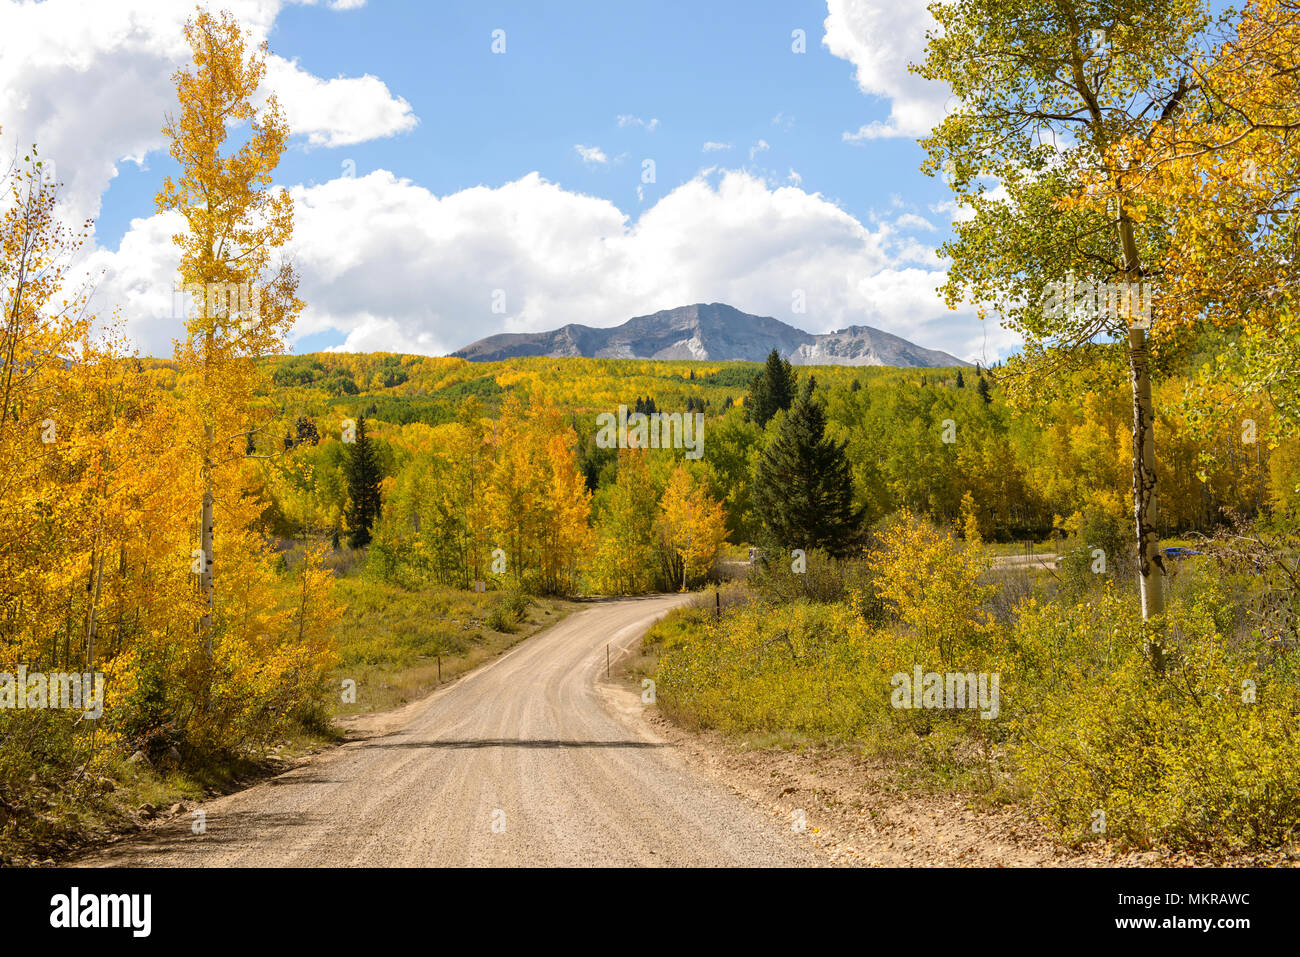 Kebler Pass - Autumn view of Kebler Pass, Crested Butte, Colorado, USA. - Stock Image